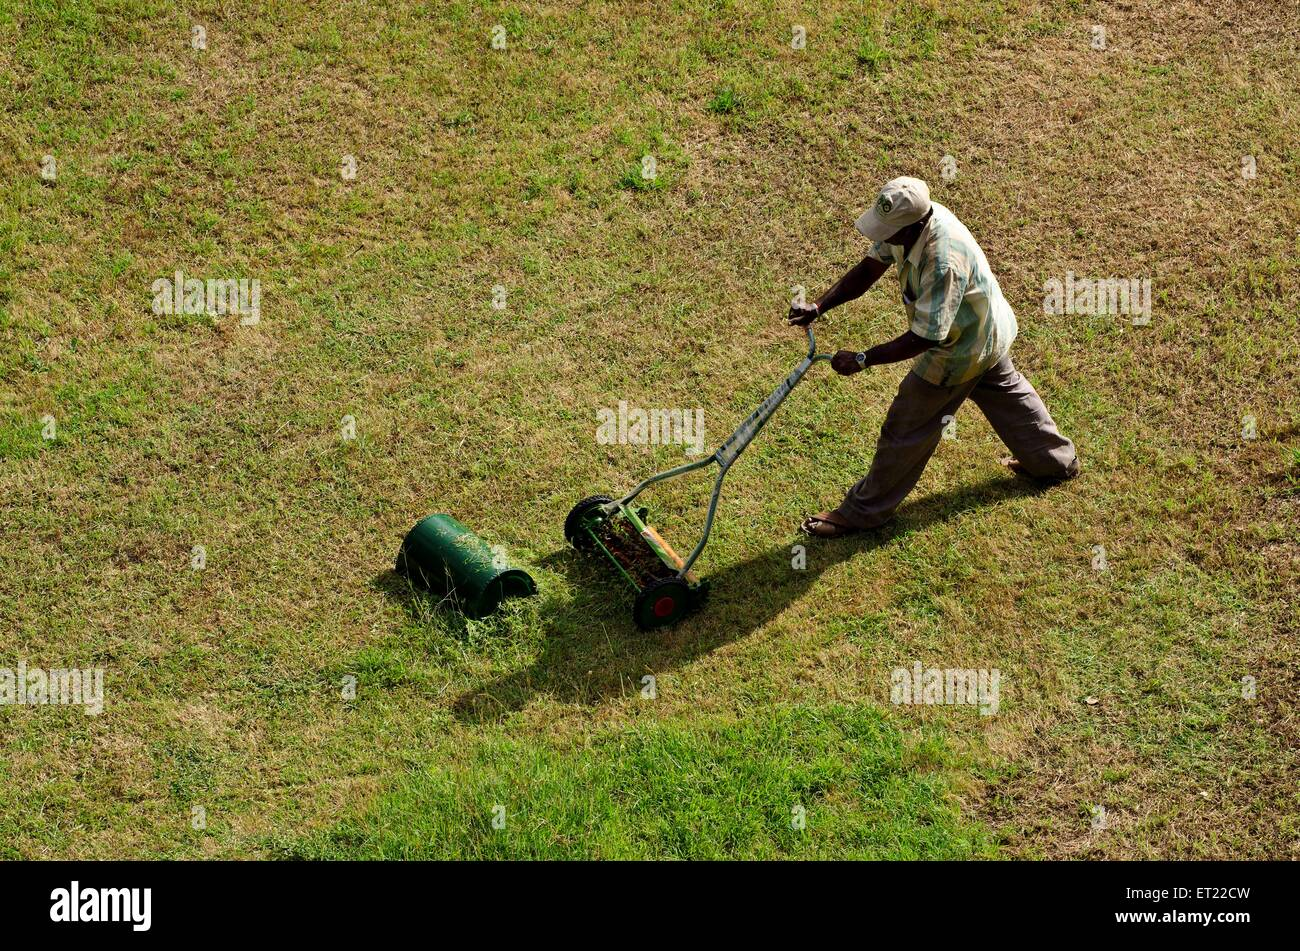 gardner moving lawn grass with mower machine Pune Maharashtra India Asia - Stock Image